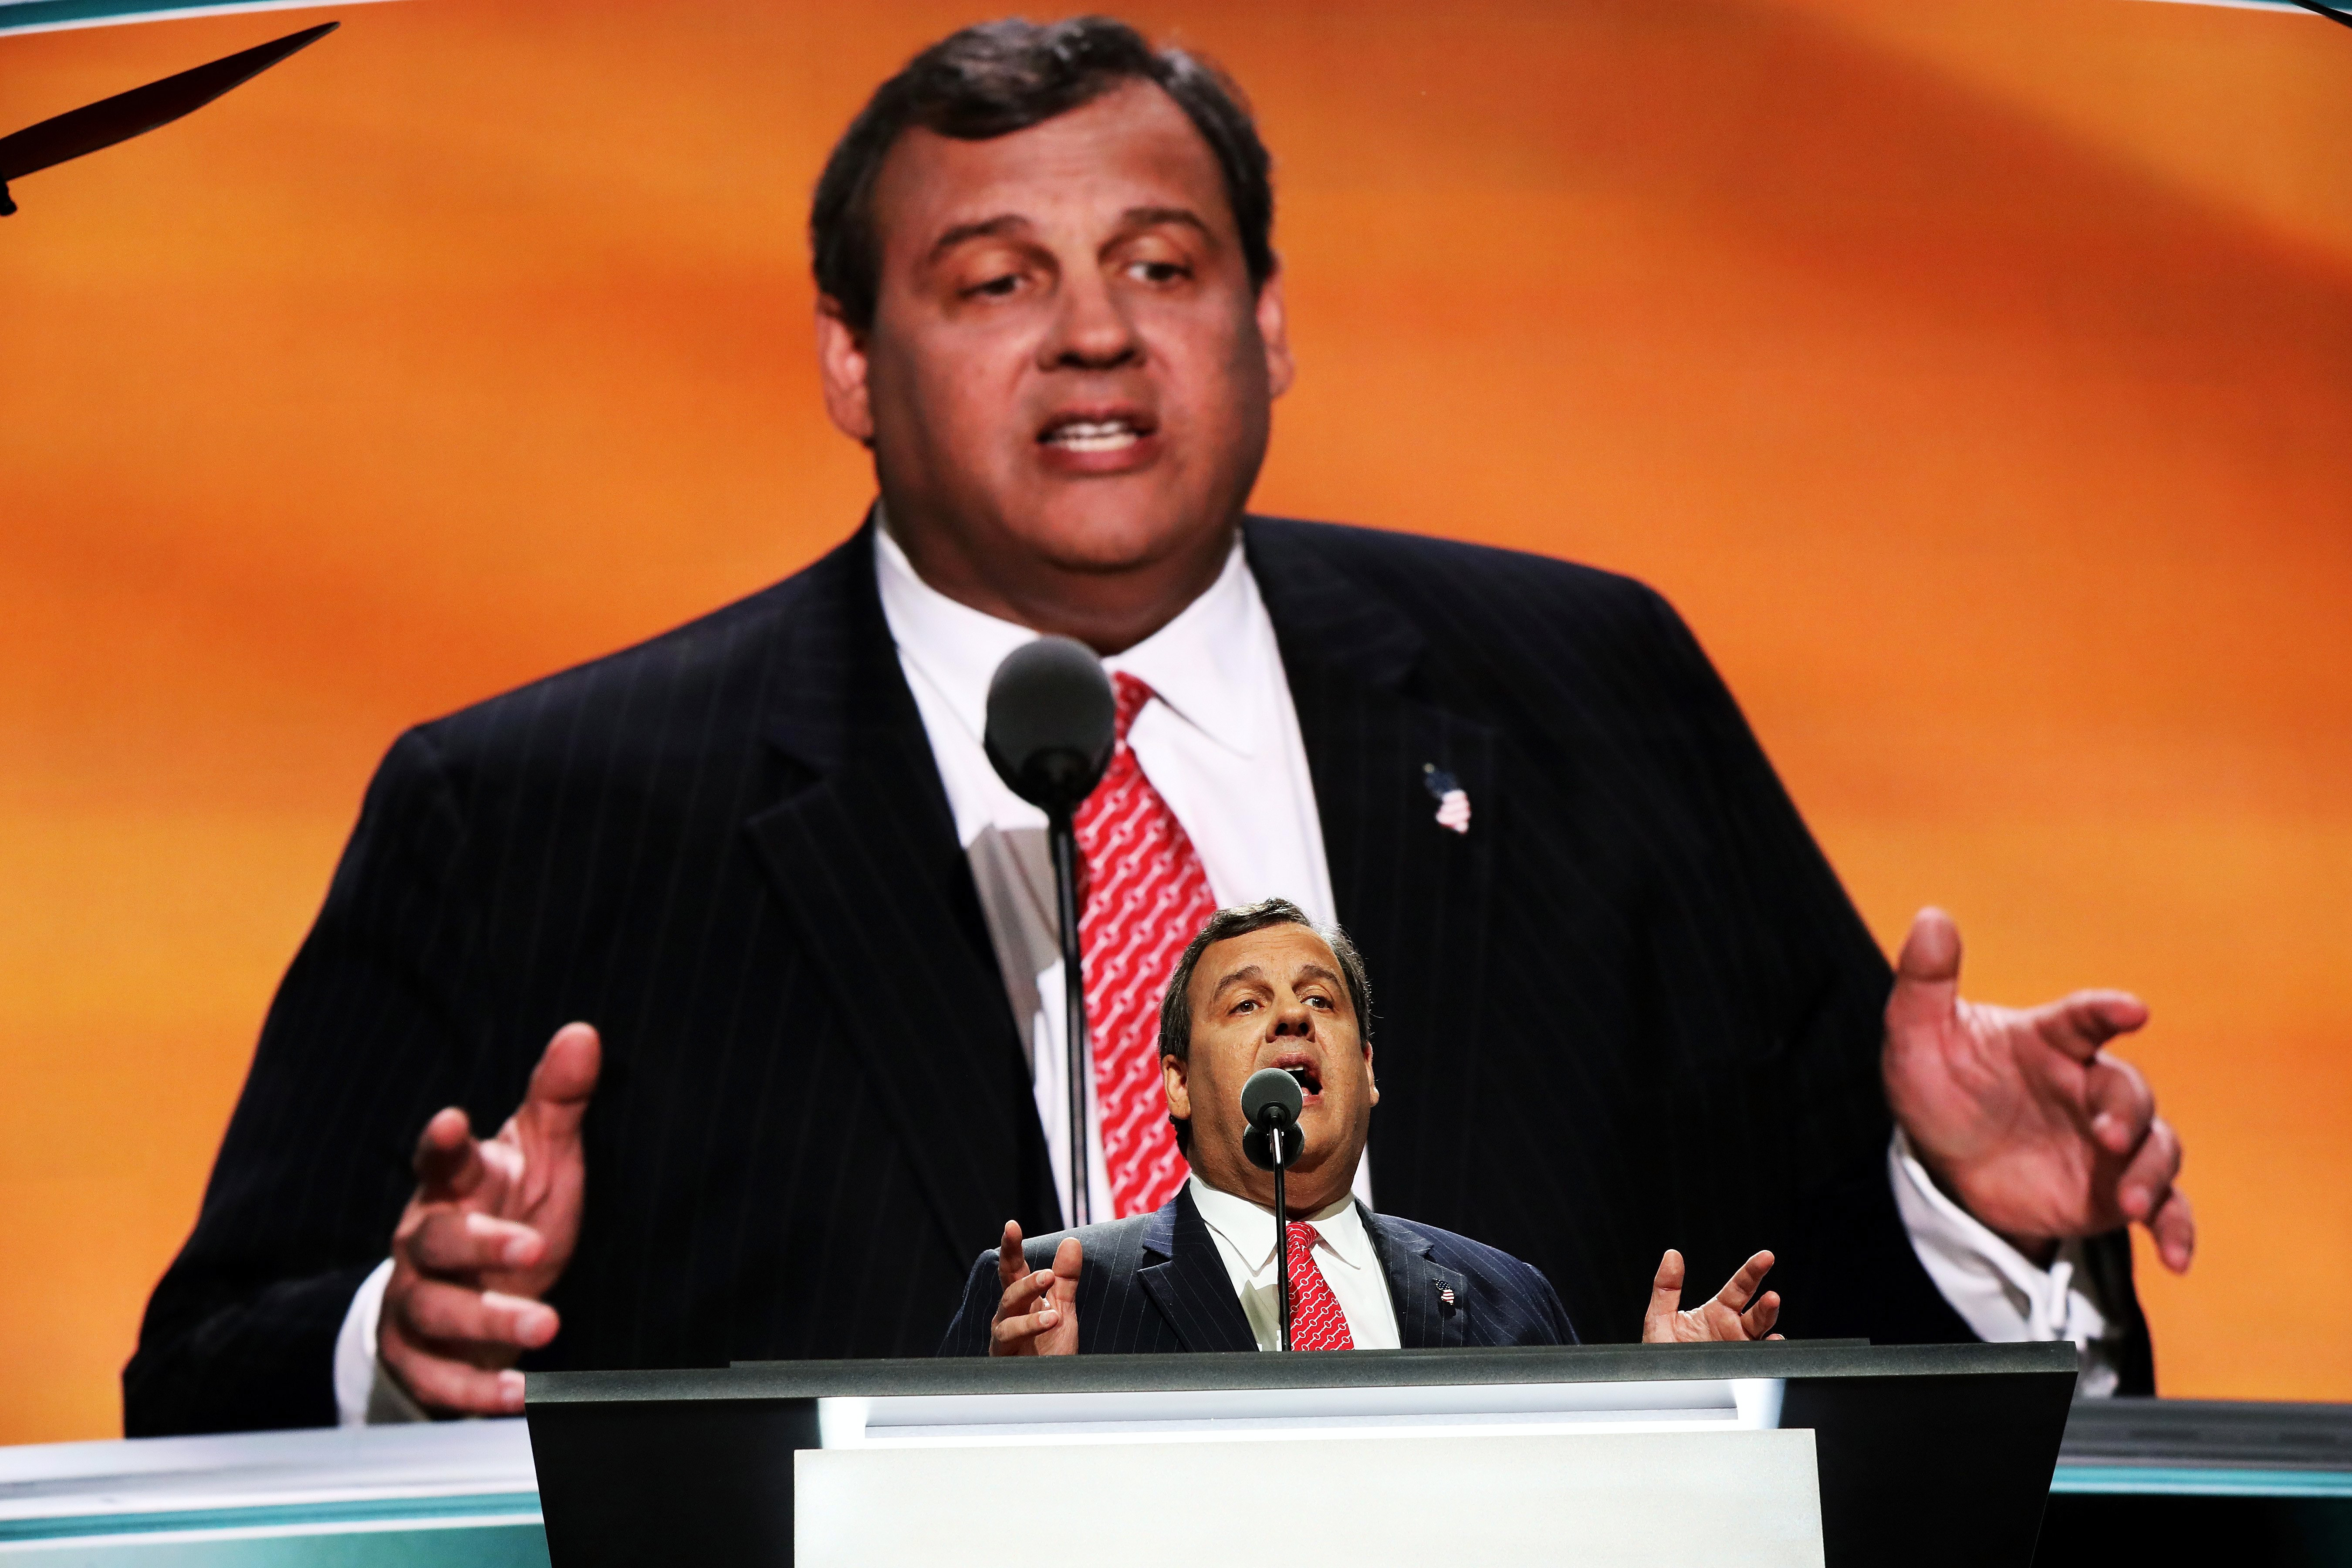 New Jersey Gov. Chris Christie delivers a speech on the second day of the Republican National Convention on July 19, 2016 at the Quicken Loans Arena in Cleveland.